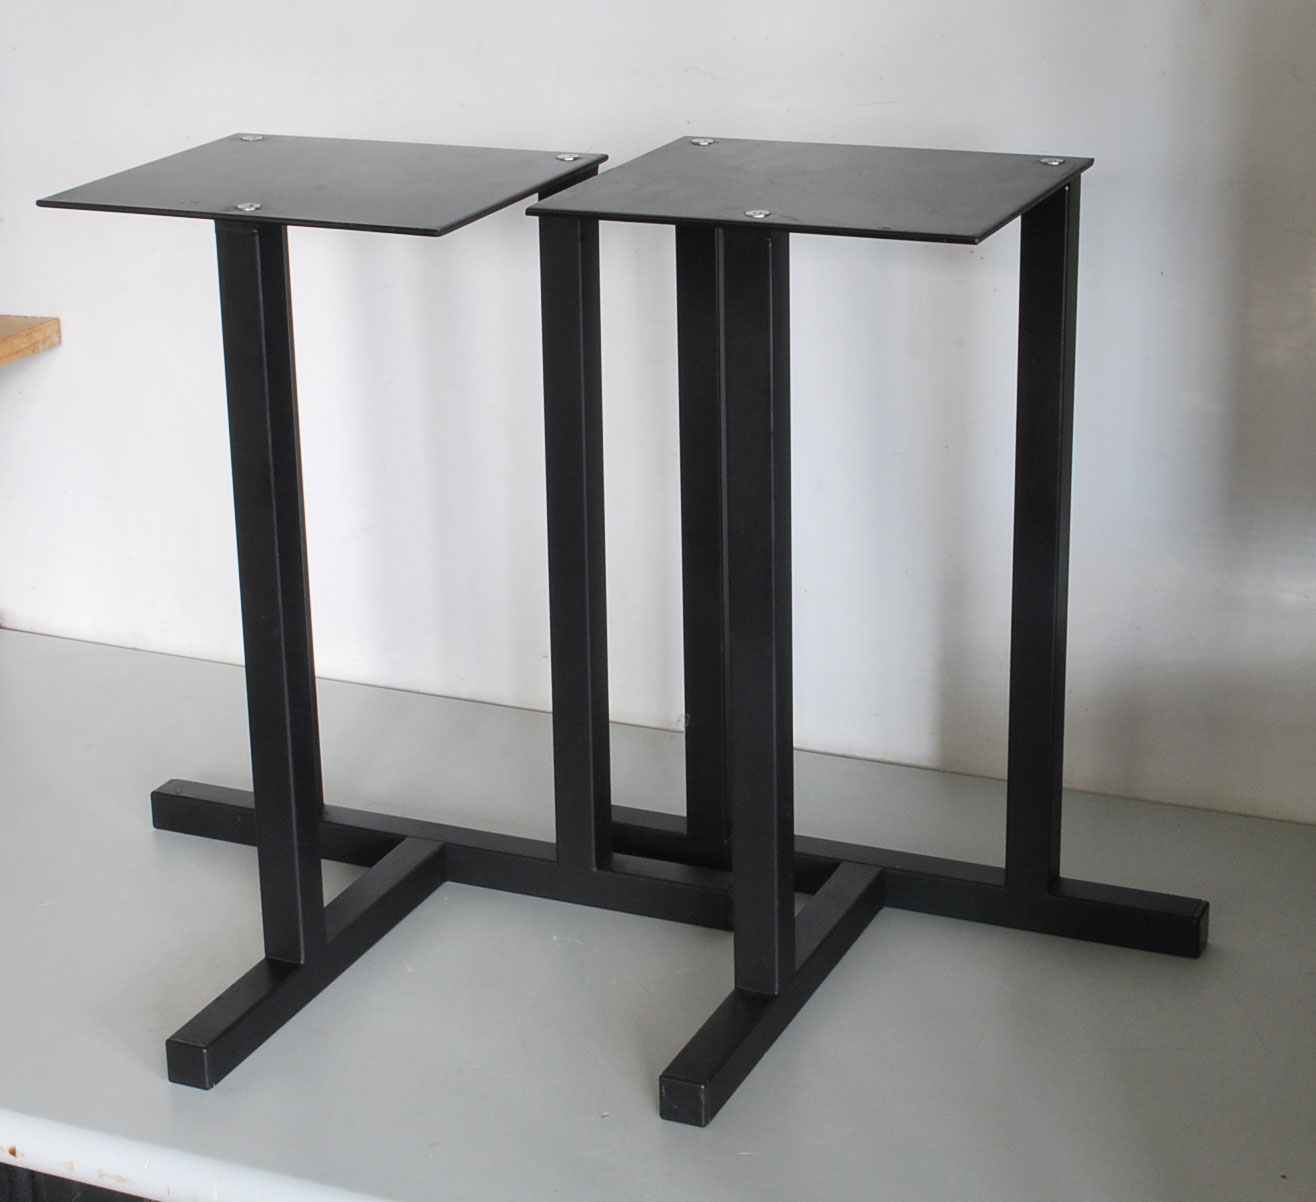 Medium Speaker Stands